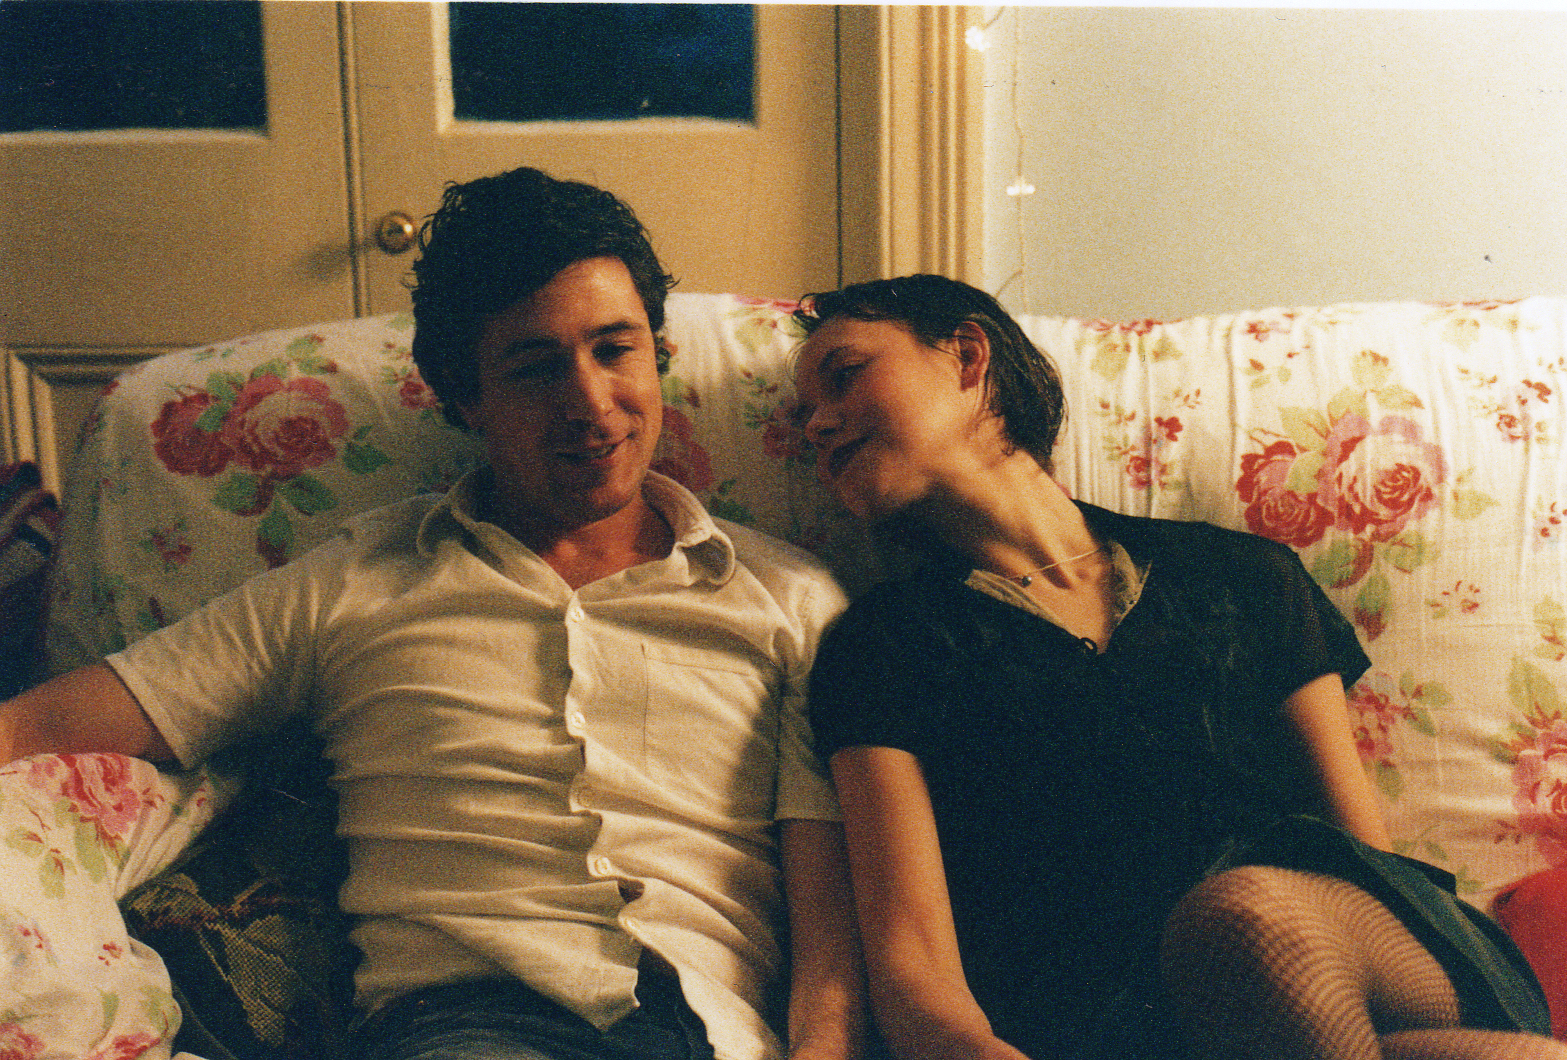 Photo Finish - Elen & Joe on the Sofa - colour Photo no 2.jpg